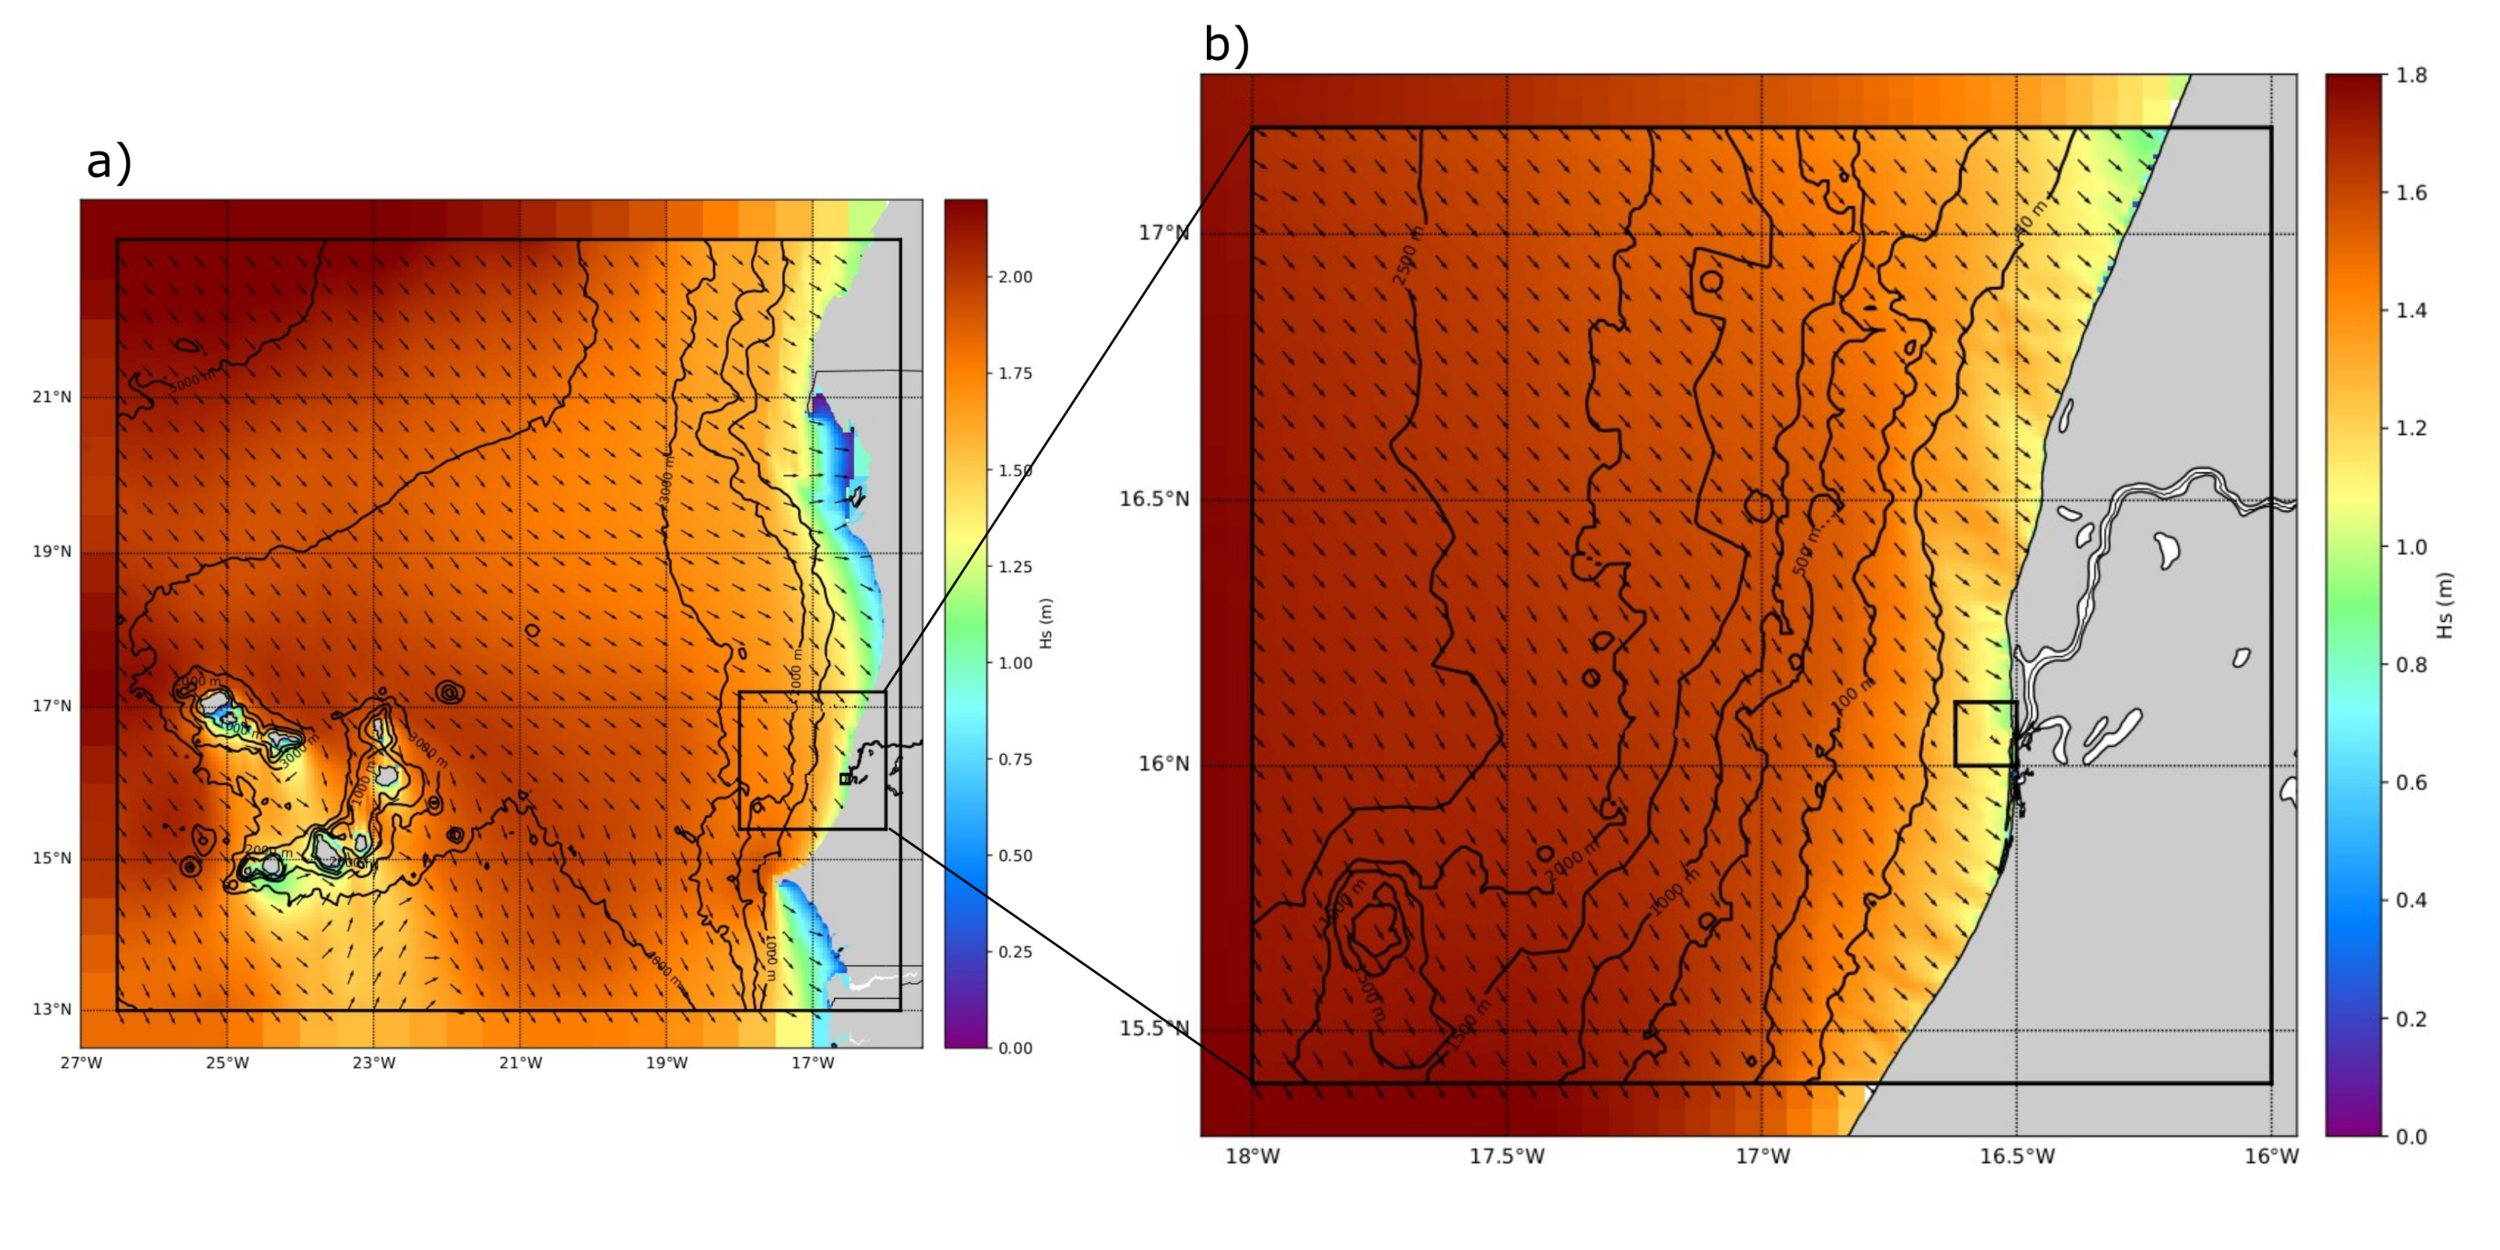 Figure 1: Snapshot of modelled significant wave height from the 5-km resolution SWAN parent nest off the Senegal/Mauritania coasts, delimited by the outer rectangle on (a). Extents of the 1-km resolution child nest are represented by the outer and inner rectangles on (a) and (b), respectively. Extents of the 100-m resolution child nest are represented by the inner rectangle on (b).